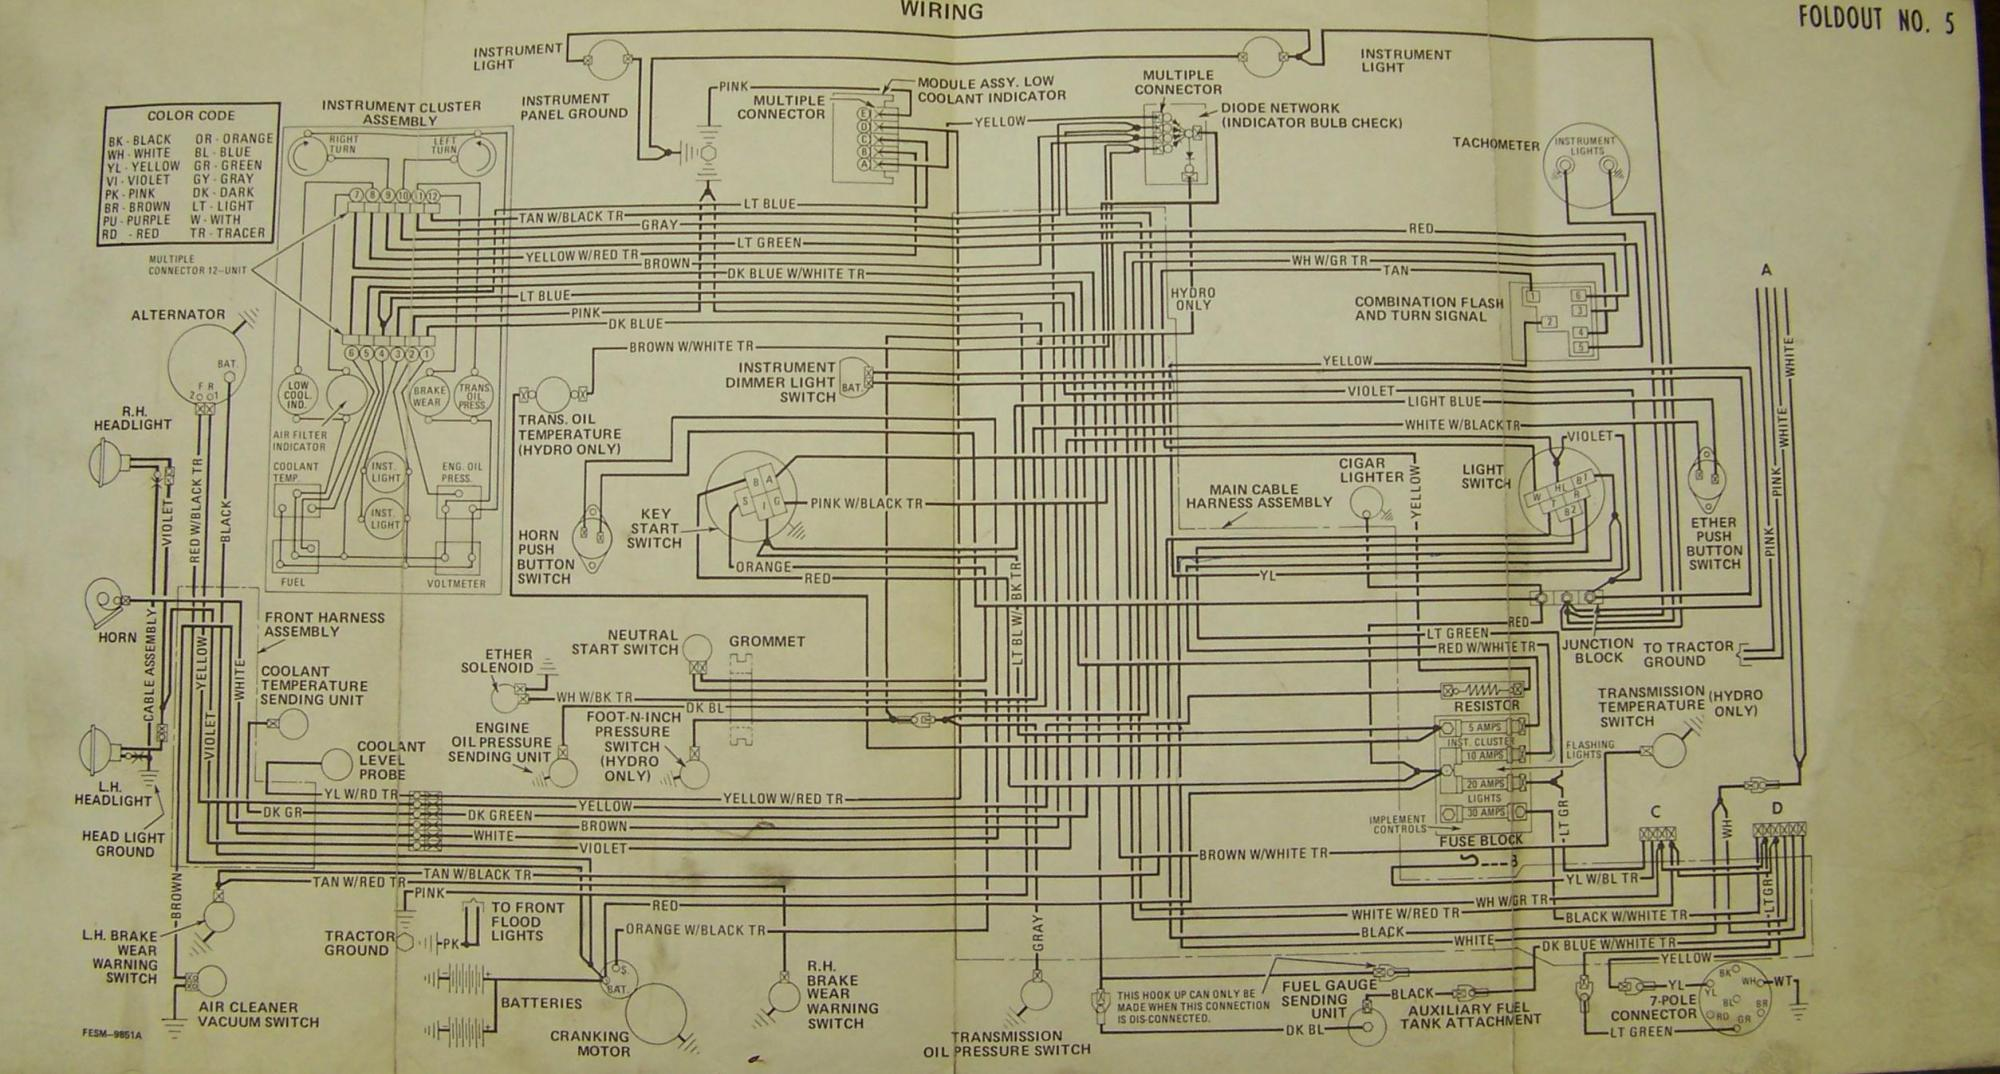 hight resolution of wiring diagram for 666 ih tractor wiring diagram mega carter gruenewald co inc ih farmall